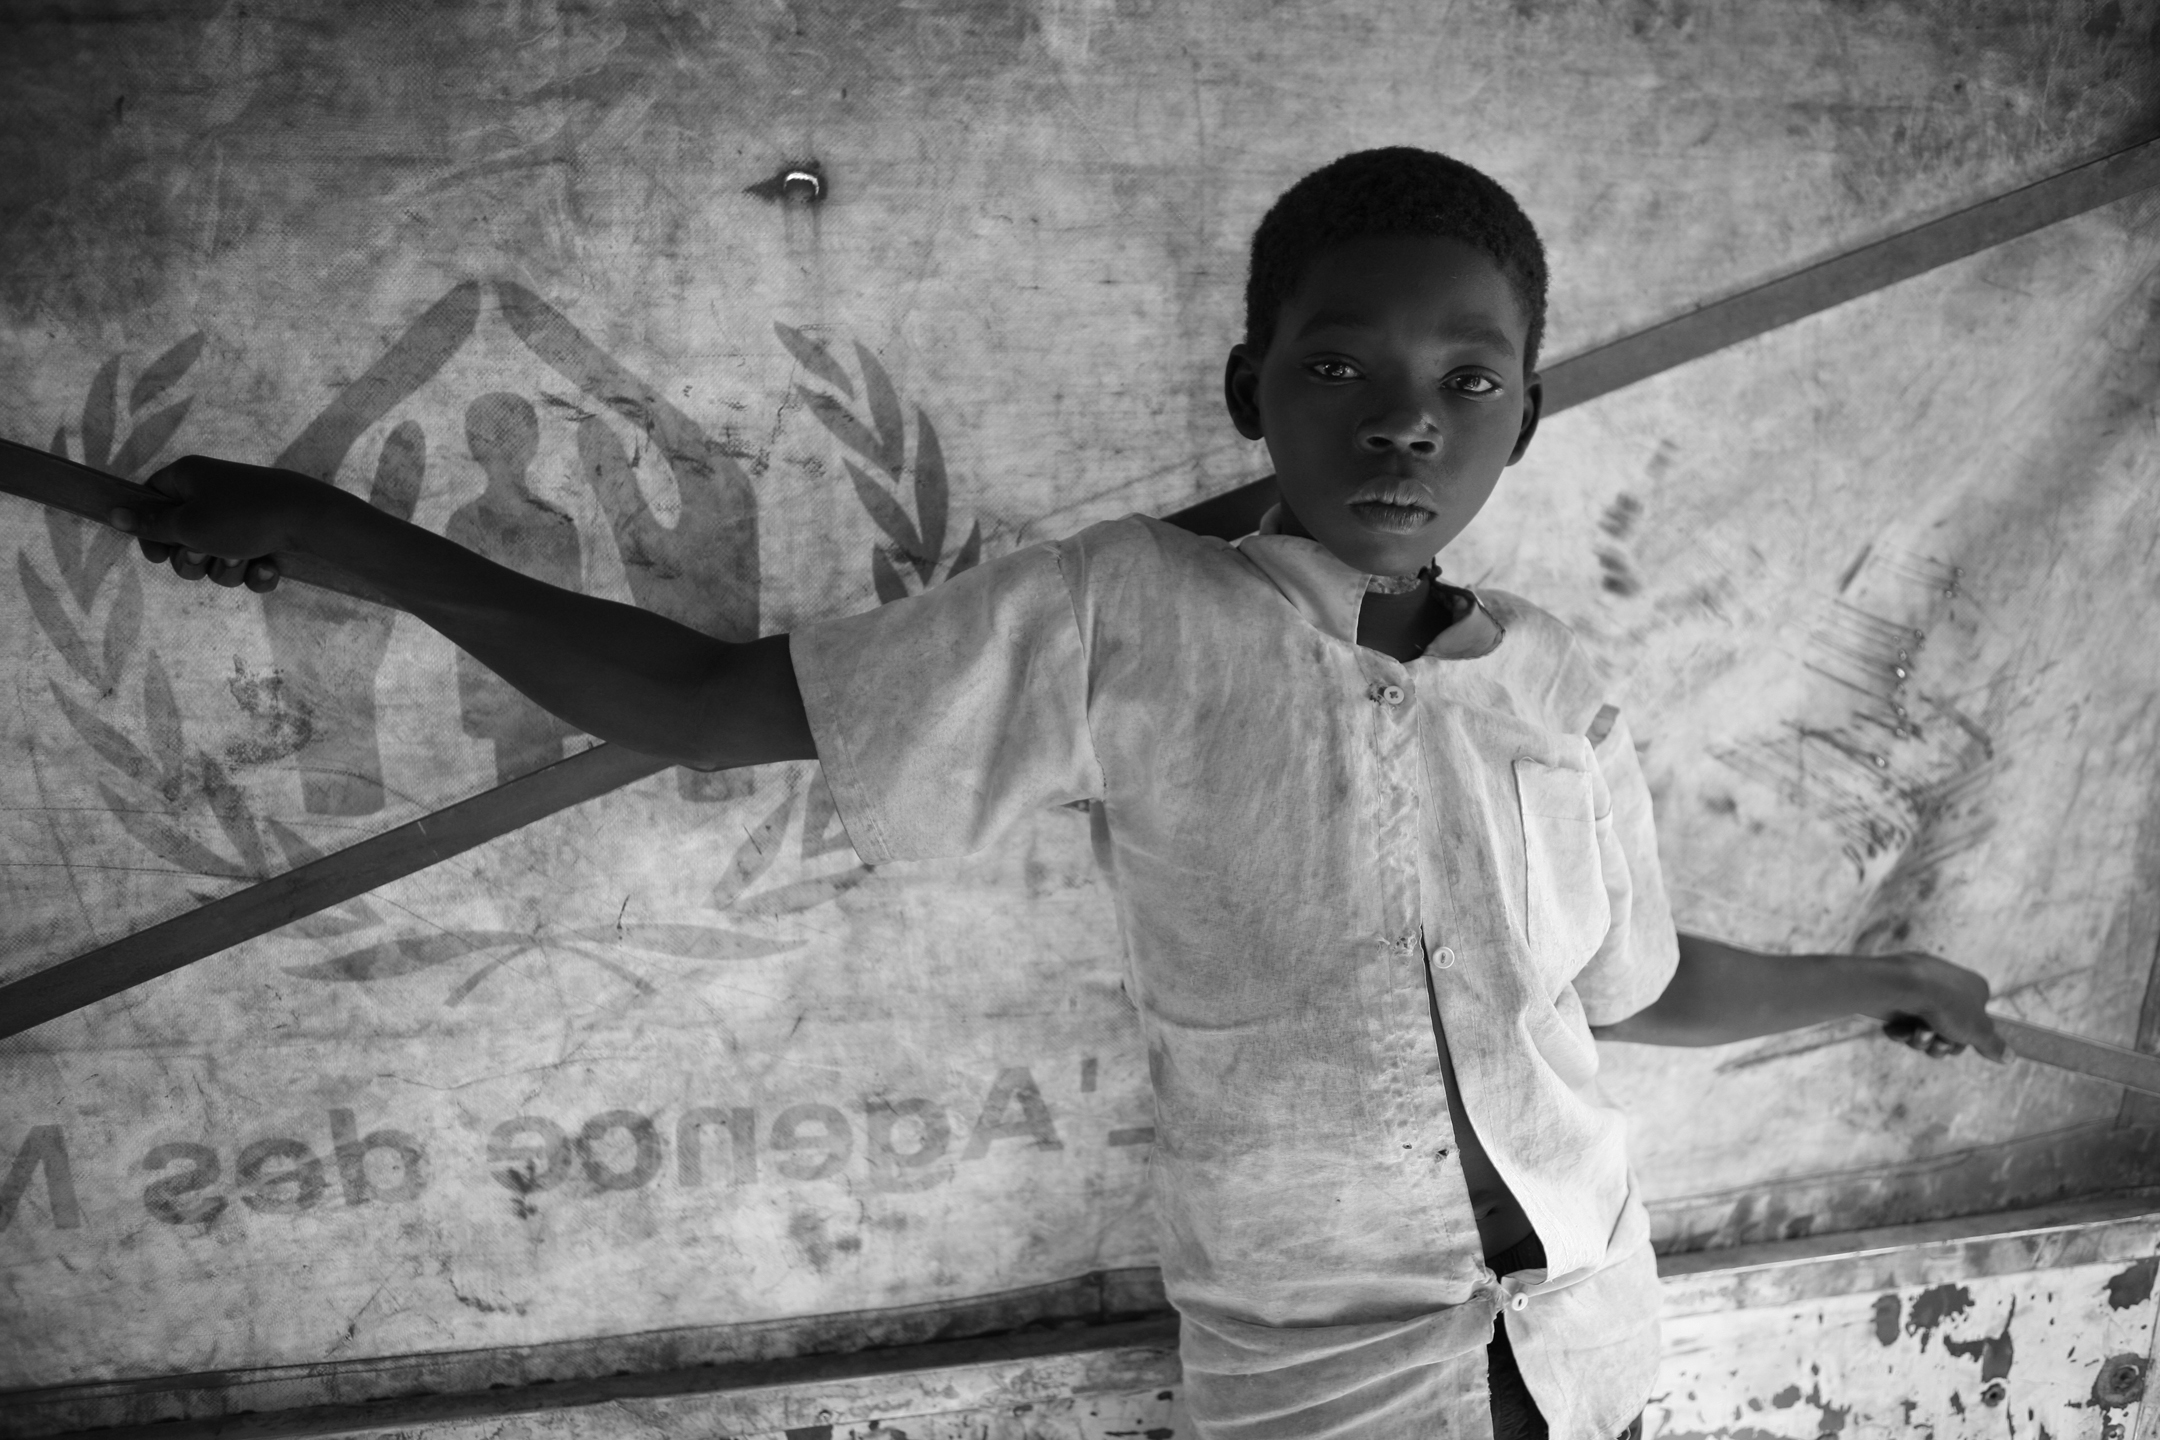 Birunga, age 13, escaped alone from his village in Democratic Republic of Congo after his father was killed by the LRA. He was taken in by a Sudanese family in Gangura, and continued his journey by truck with 61 other Congolese refugees to Makpandu. Birunga traveled with only the clothes on his back and two new bicycle tires, which he was going to sell in the Nabiapai market when he fled. UNHCR will place him with a family at the Makpandu site while attempting to locate his relatives.